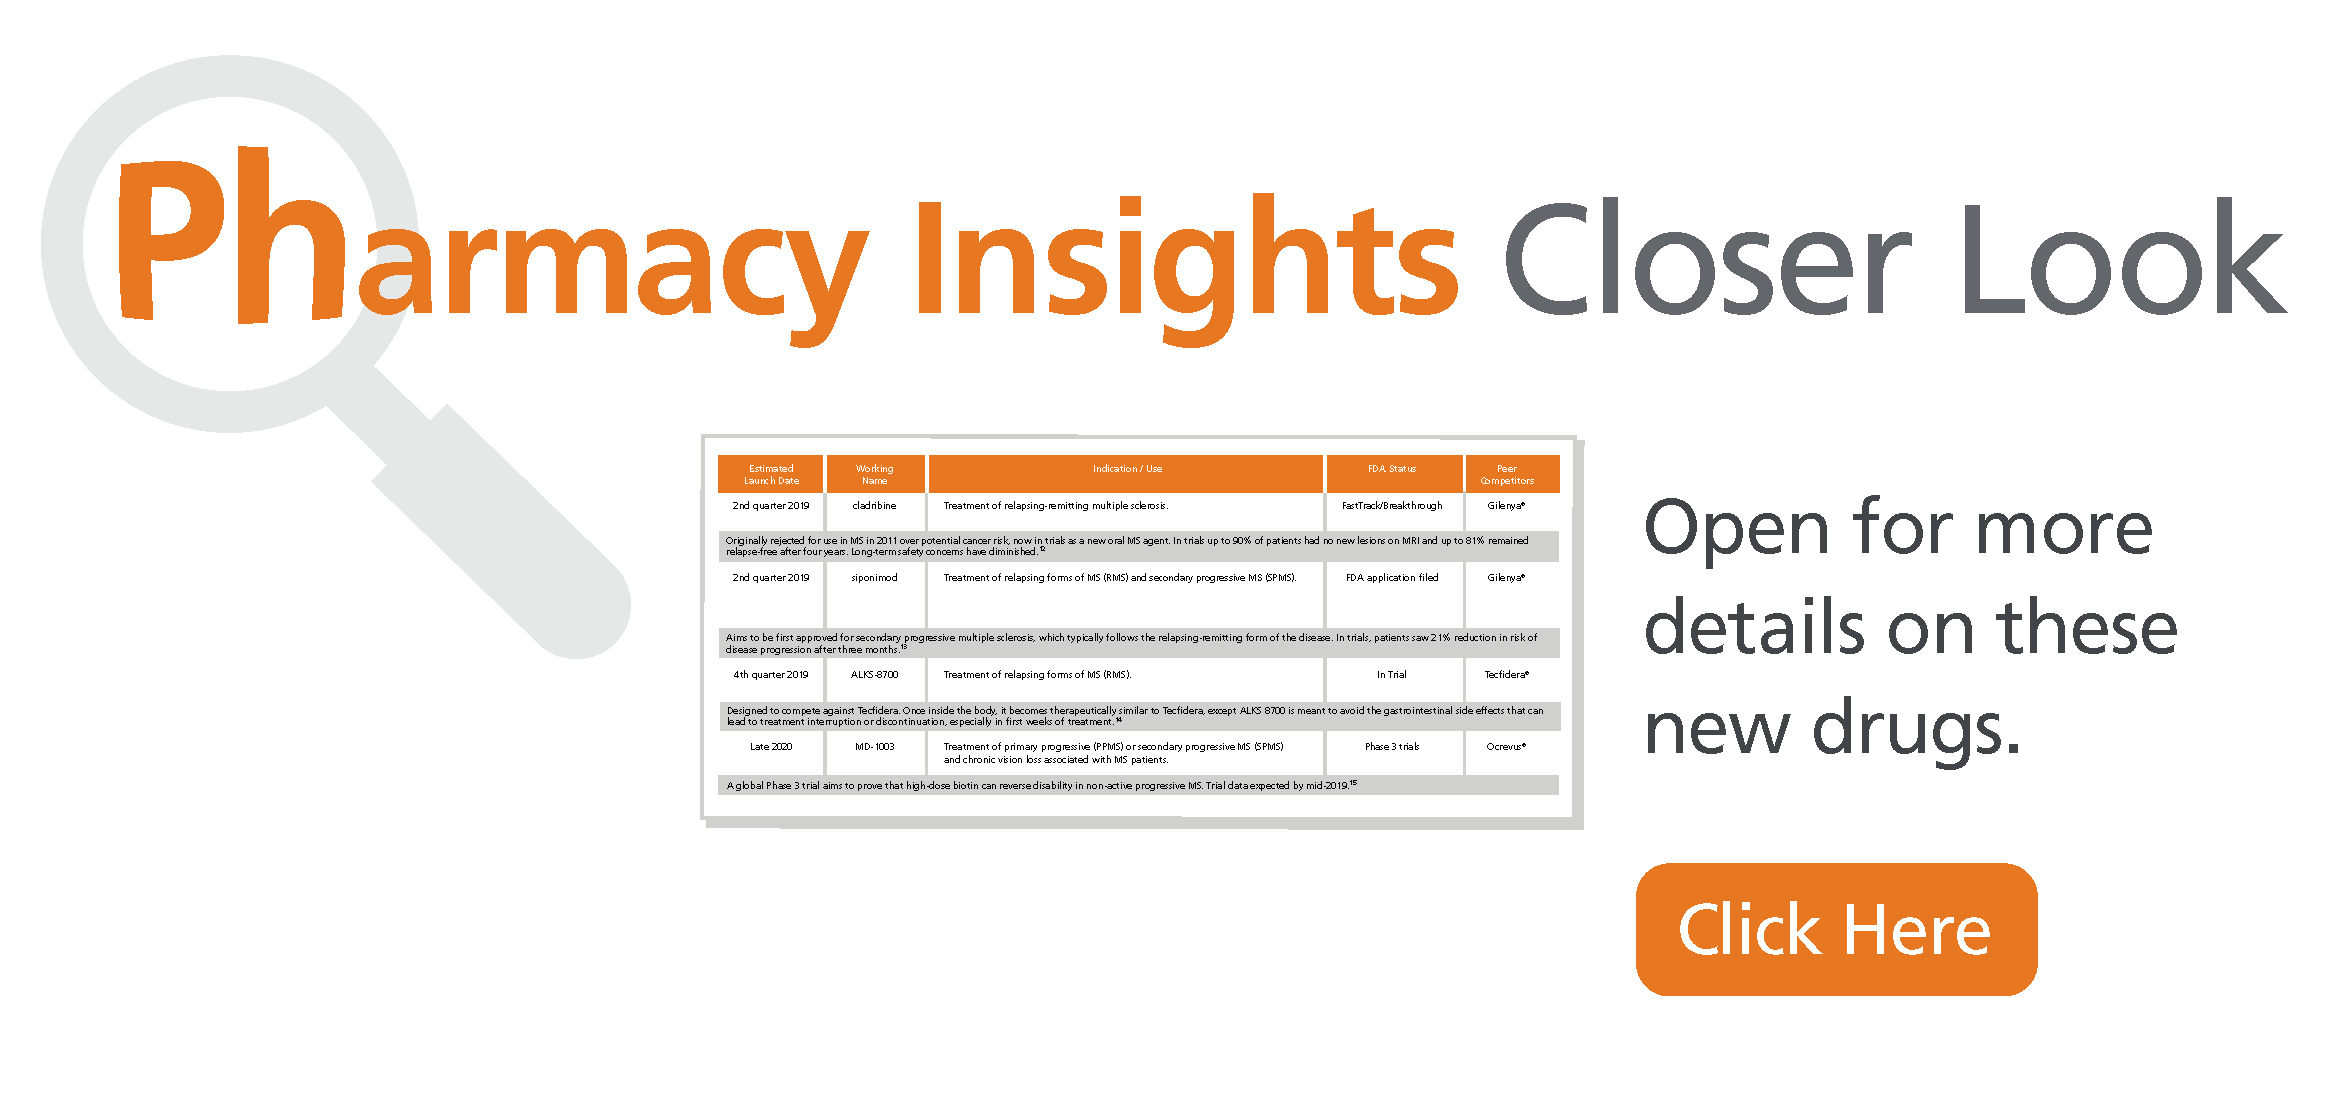 Pharmacy insights closer look